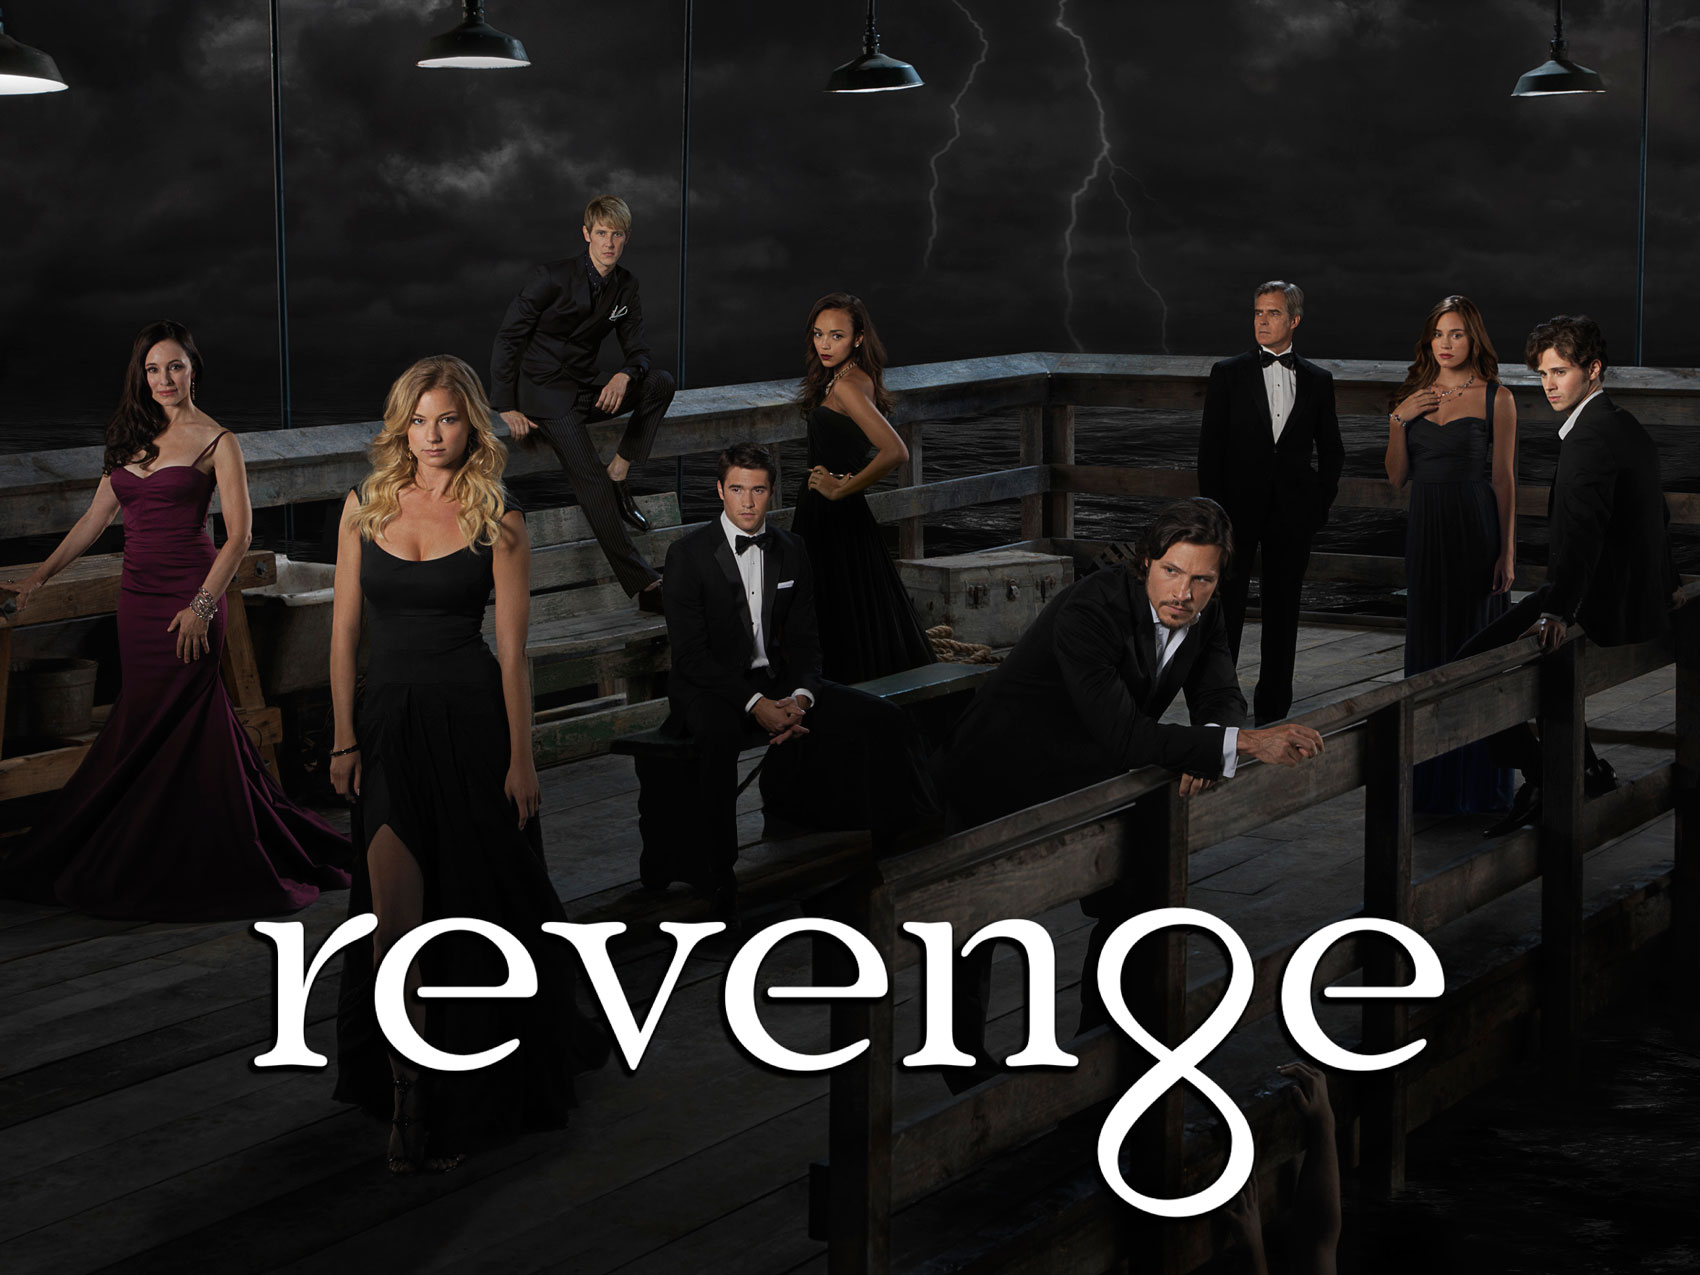 revenge season 2014 cast revenge season 02 2012 cast and